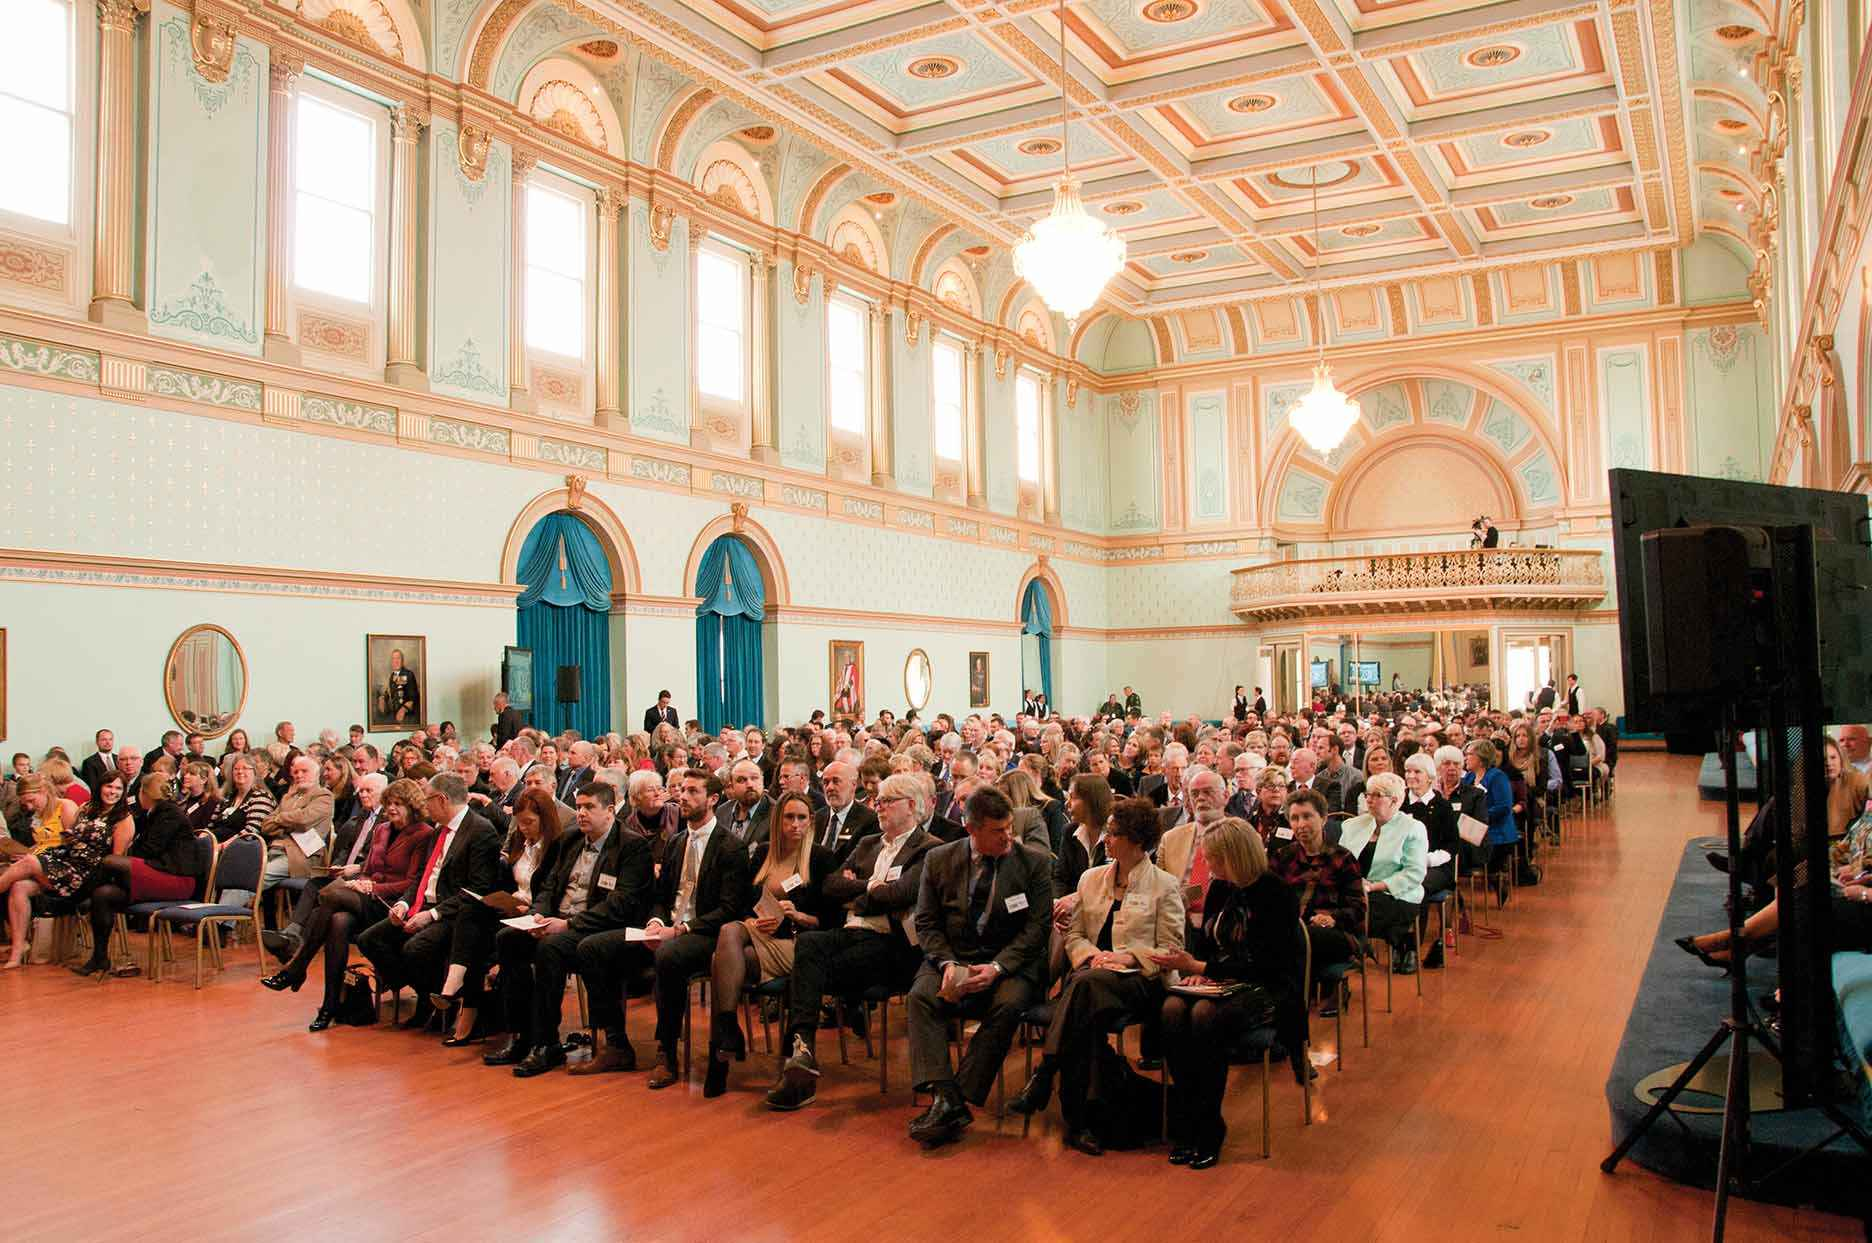 More than 350 members of the Landcare community attended the Victorian Landcare Awards at Government House in September.